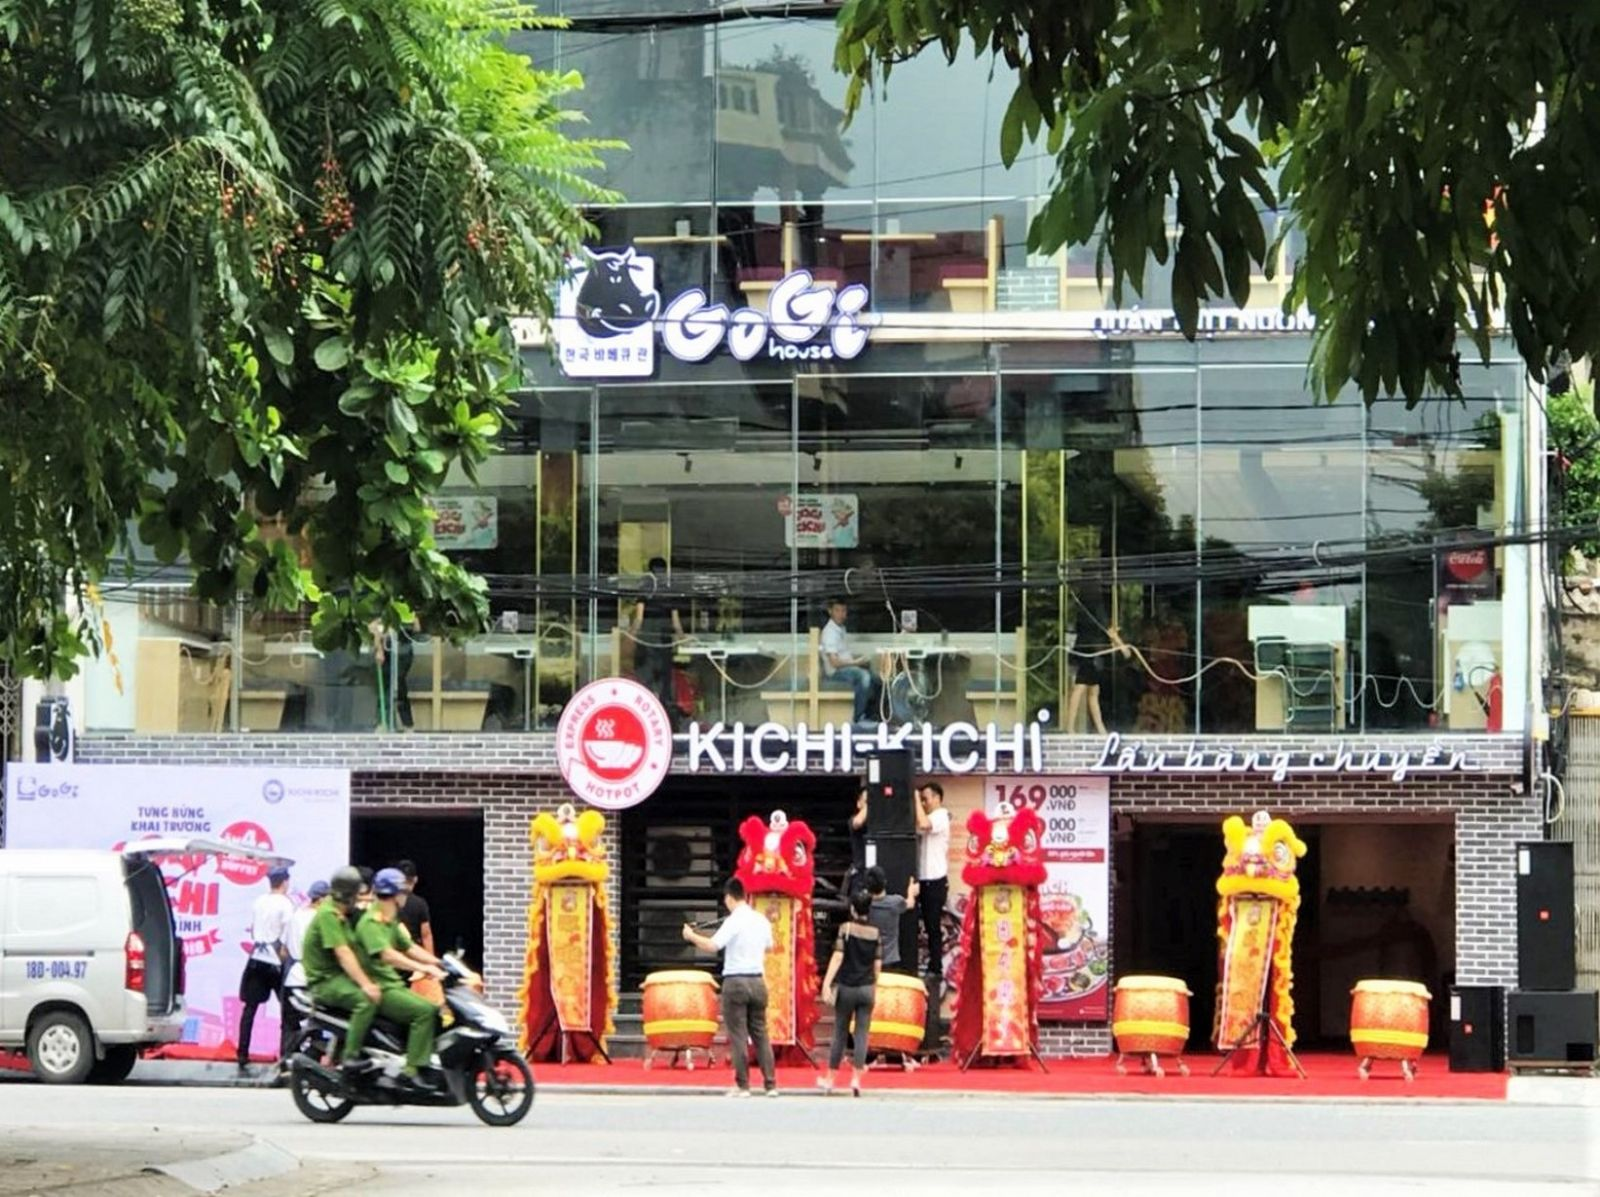 Project Gogi House and Kichi Kichi Restaurant Ninh Binh